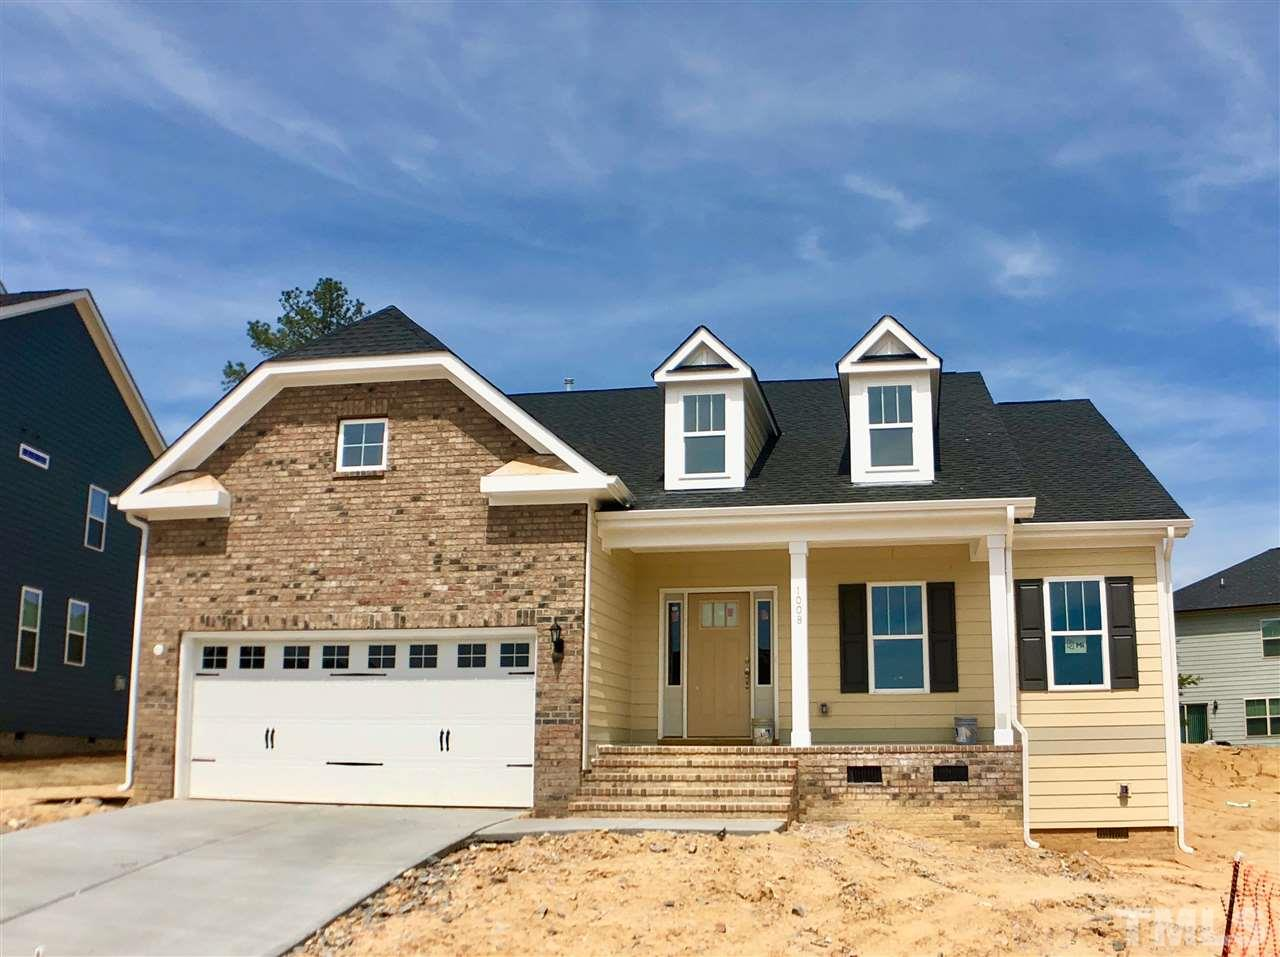 Property for sale at 1008 Dogwood Bloom Lane, Knightdale,  NC 27545